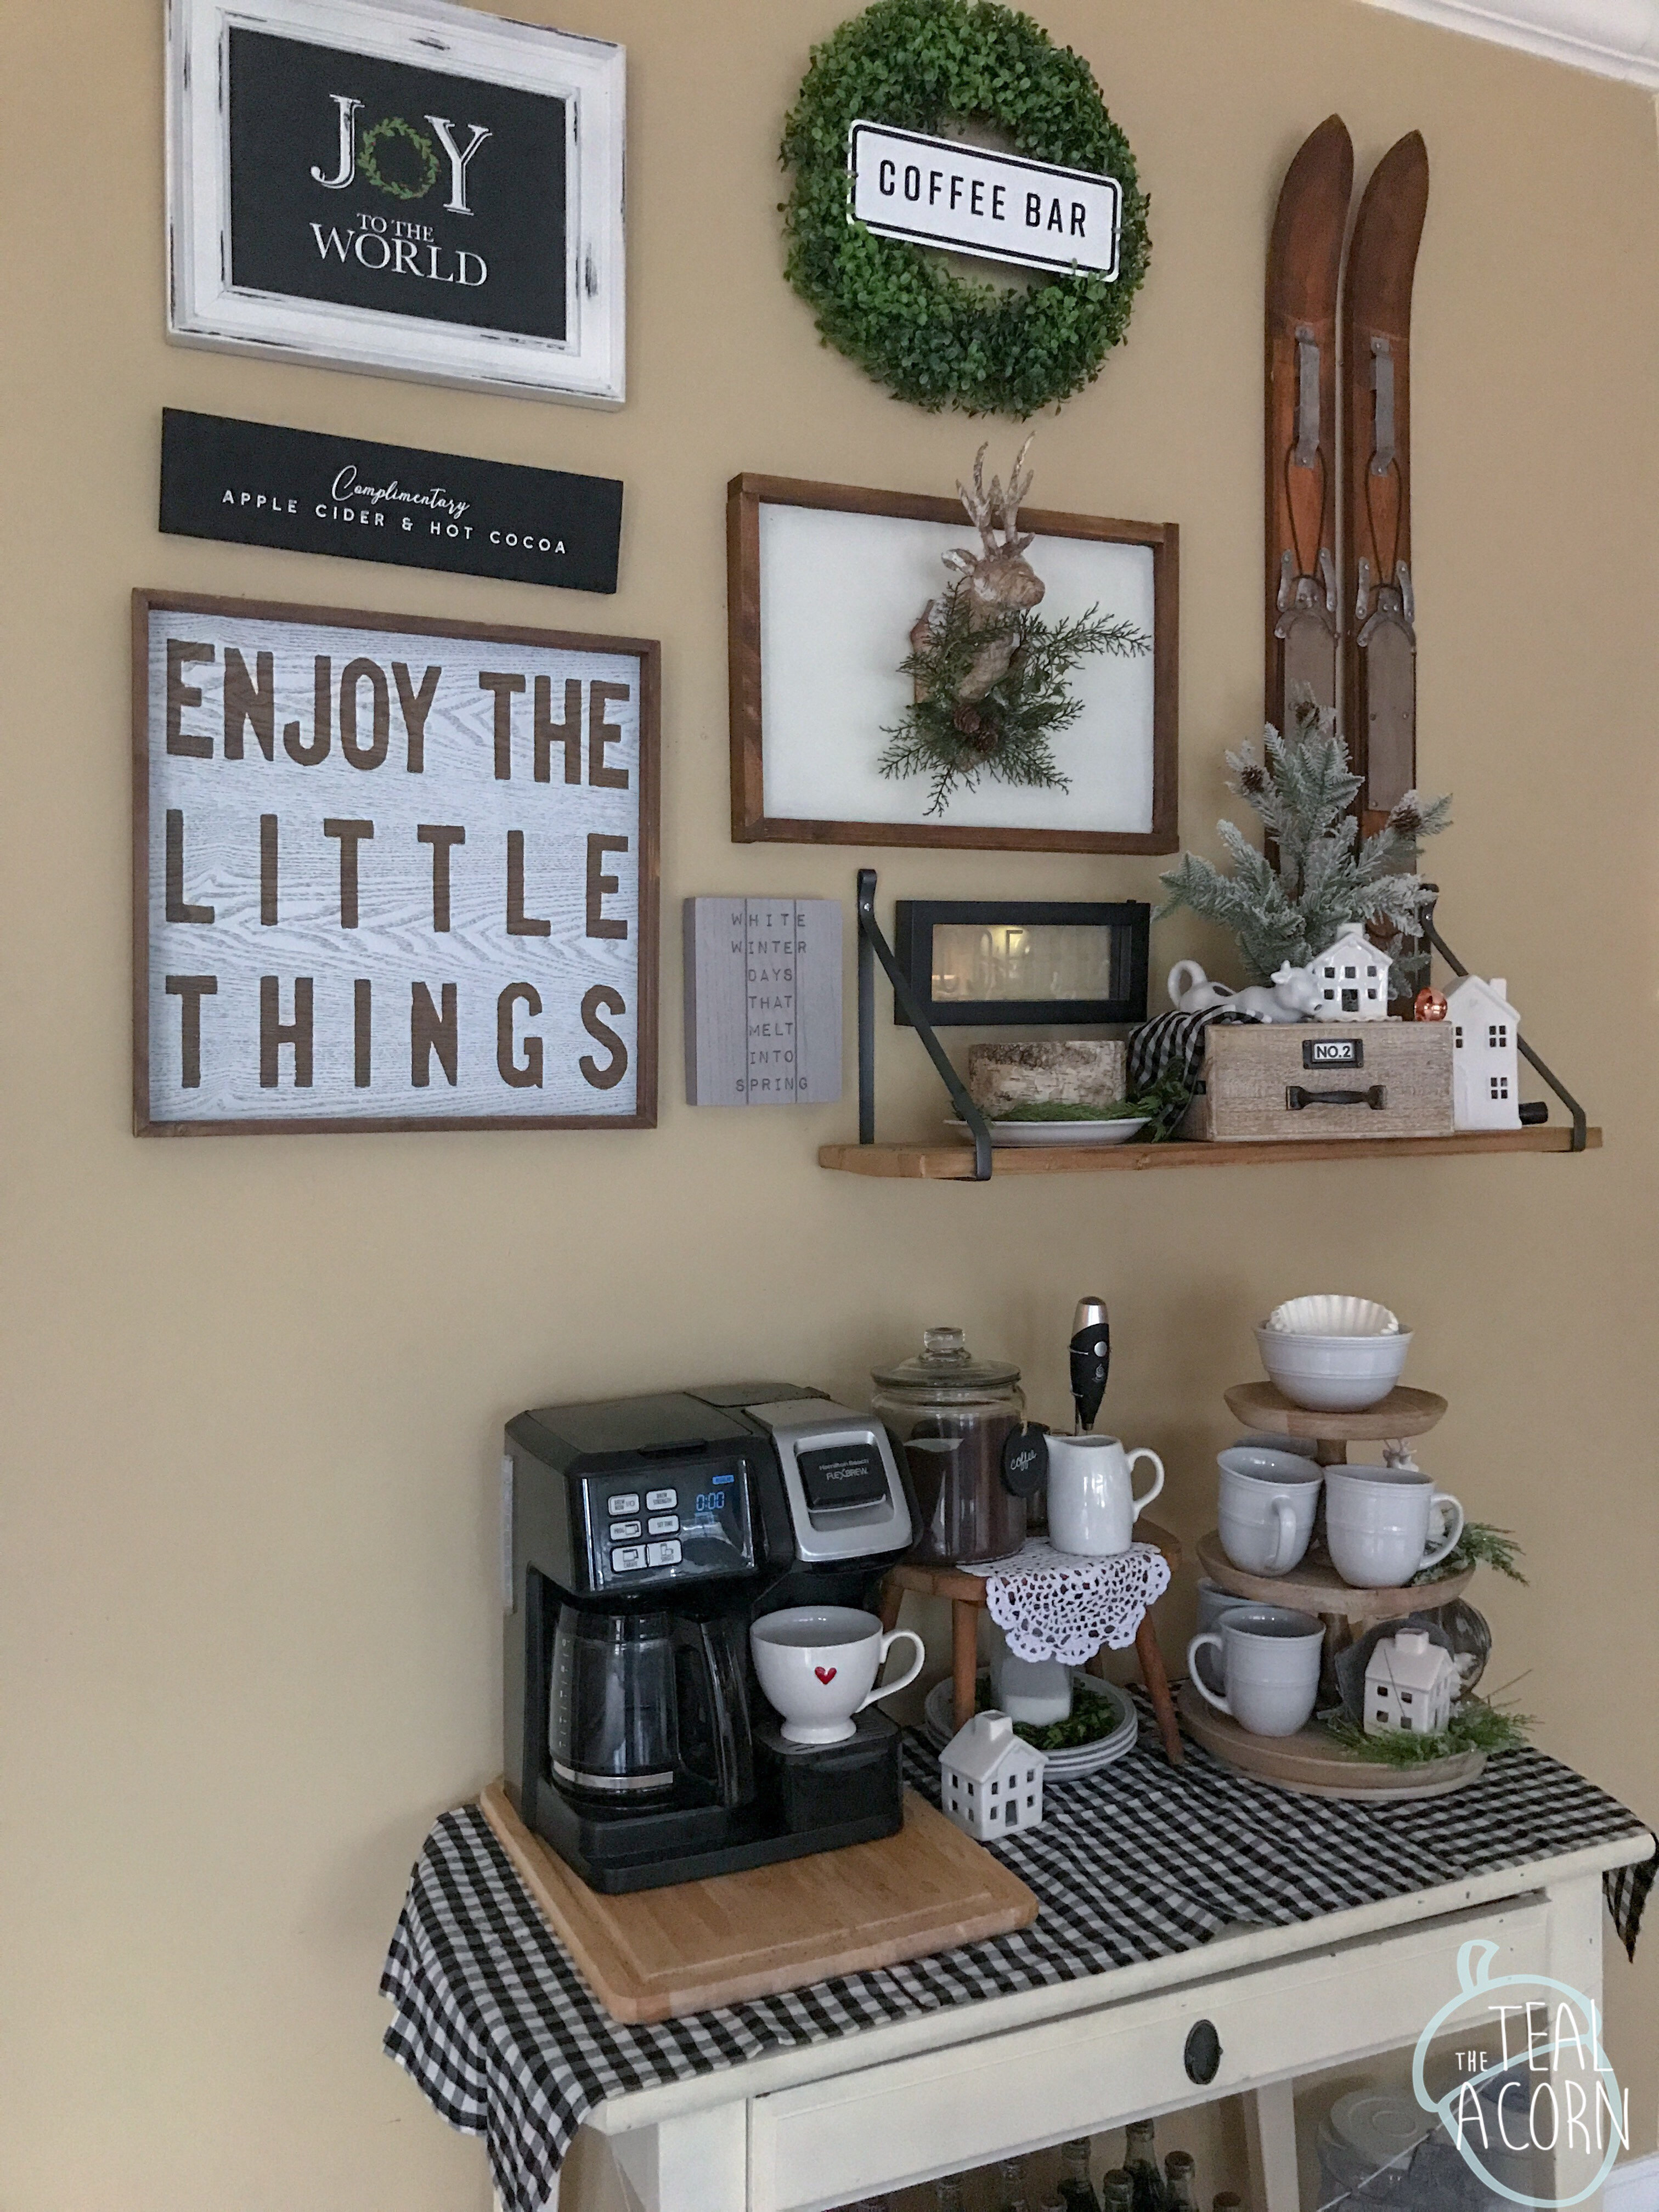 Winter gallery wall that changes seasonally. It is located above a coffee bar. Farmhouse style signs